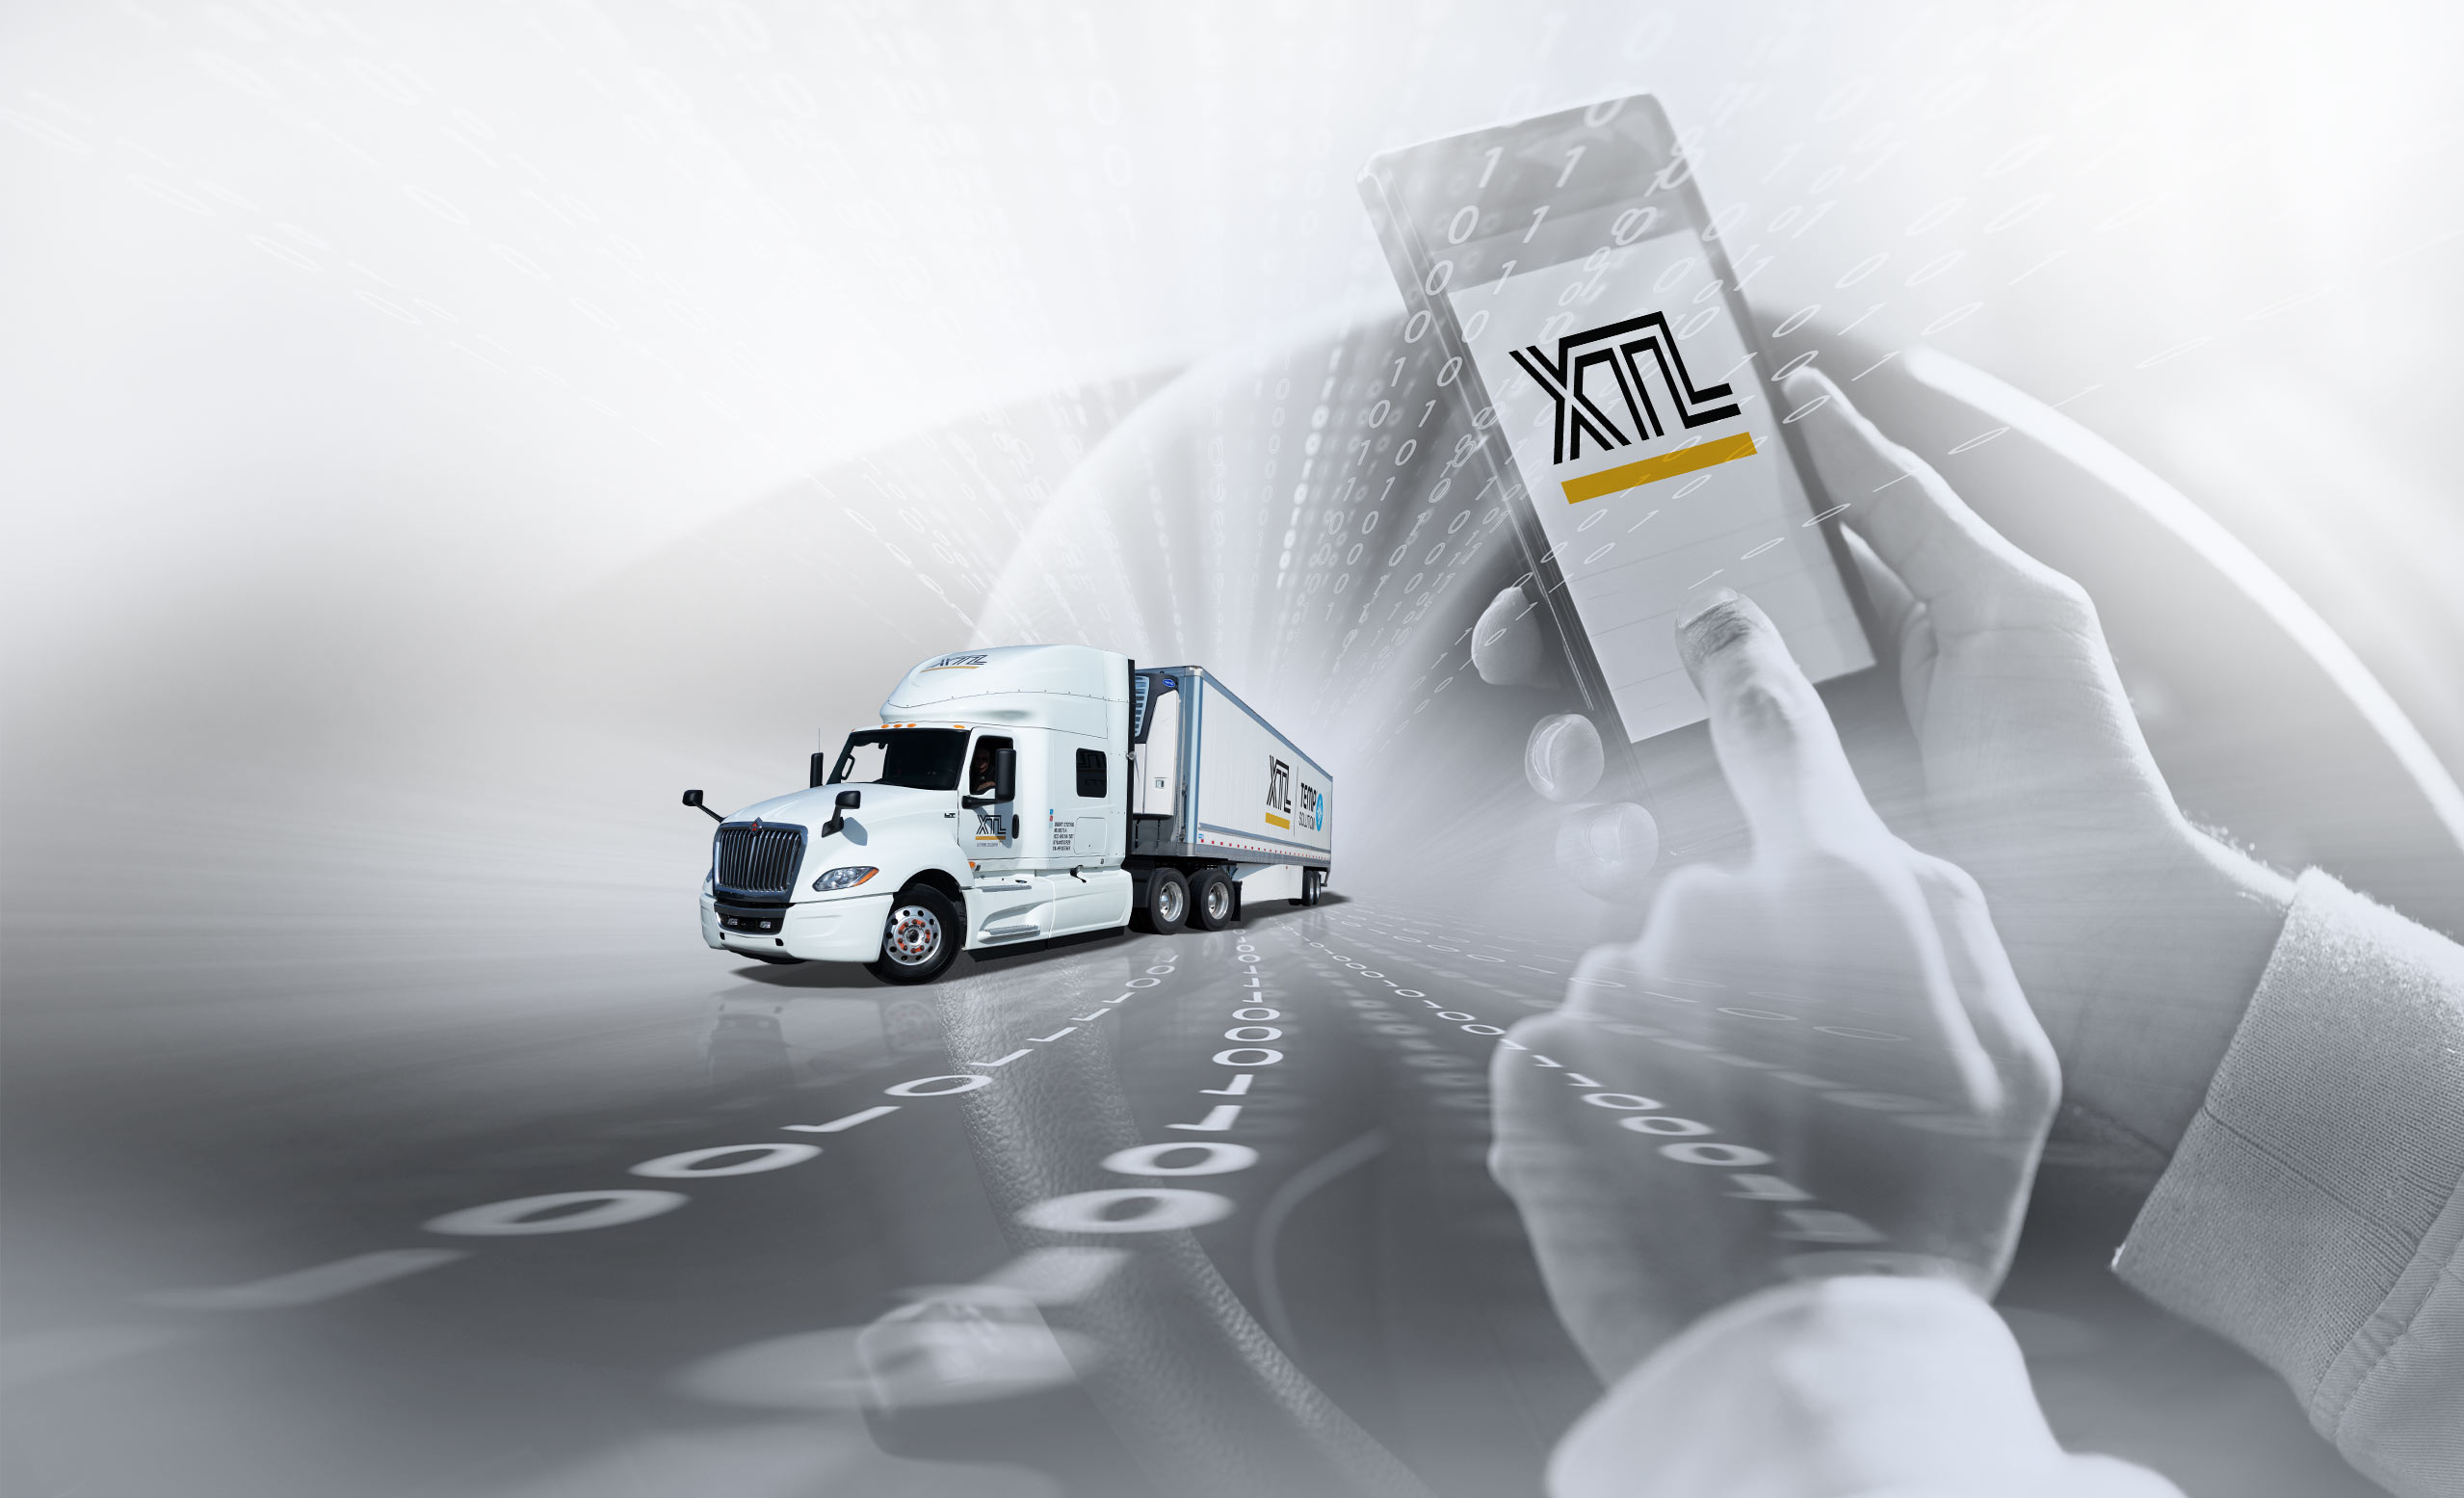 Person using a smart phone to view XTL website, with digital numbers and XTL transport truck in the background